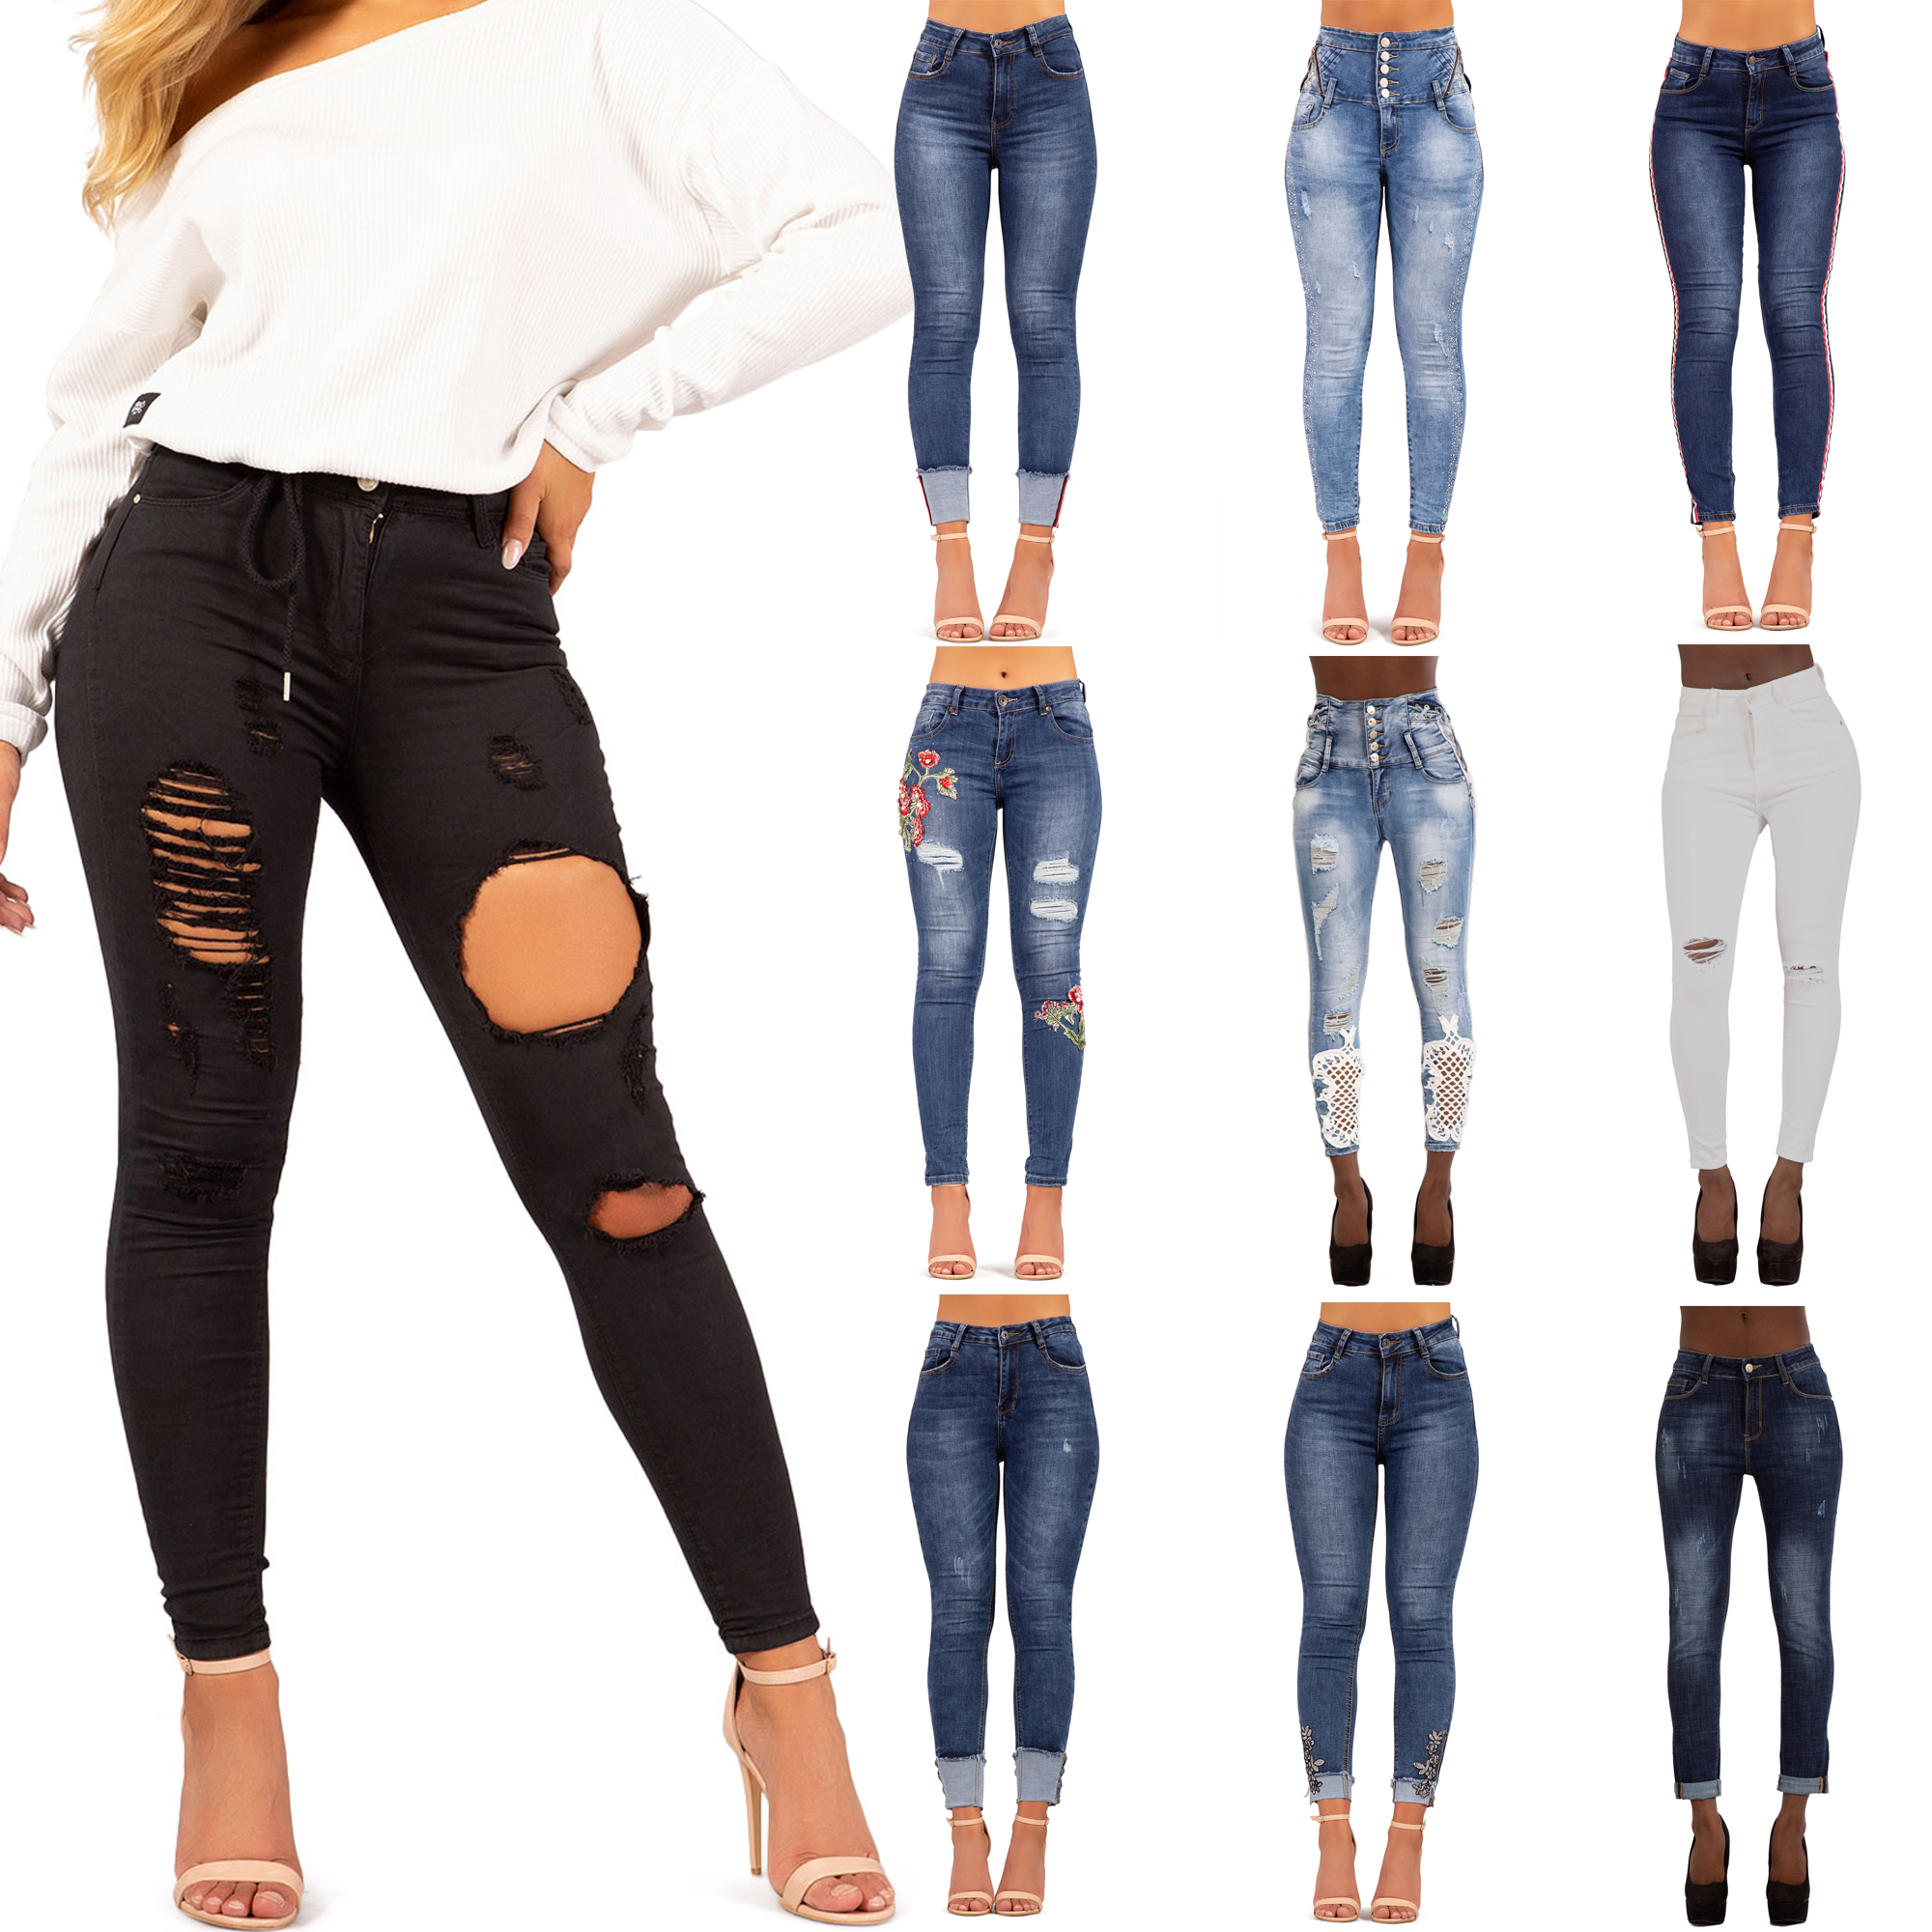 NEW WOMEN HIGH WAIST SKINNY FRAYED DISTRESSED KNEE RIPPED LADIES JEGGING JEANS